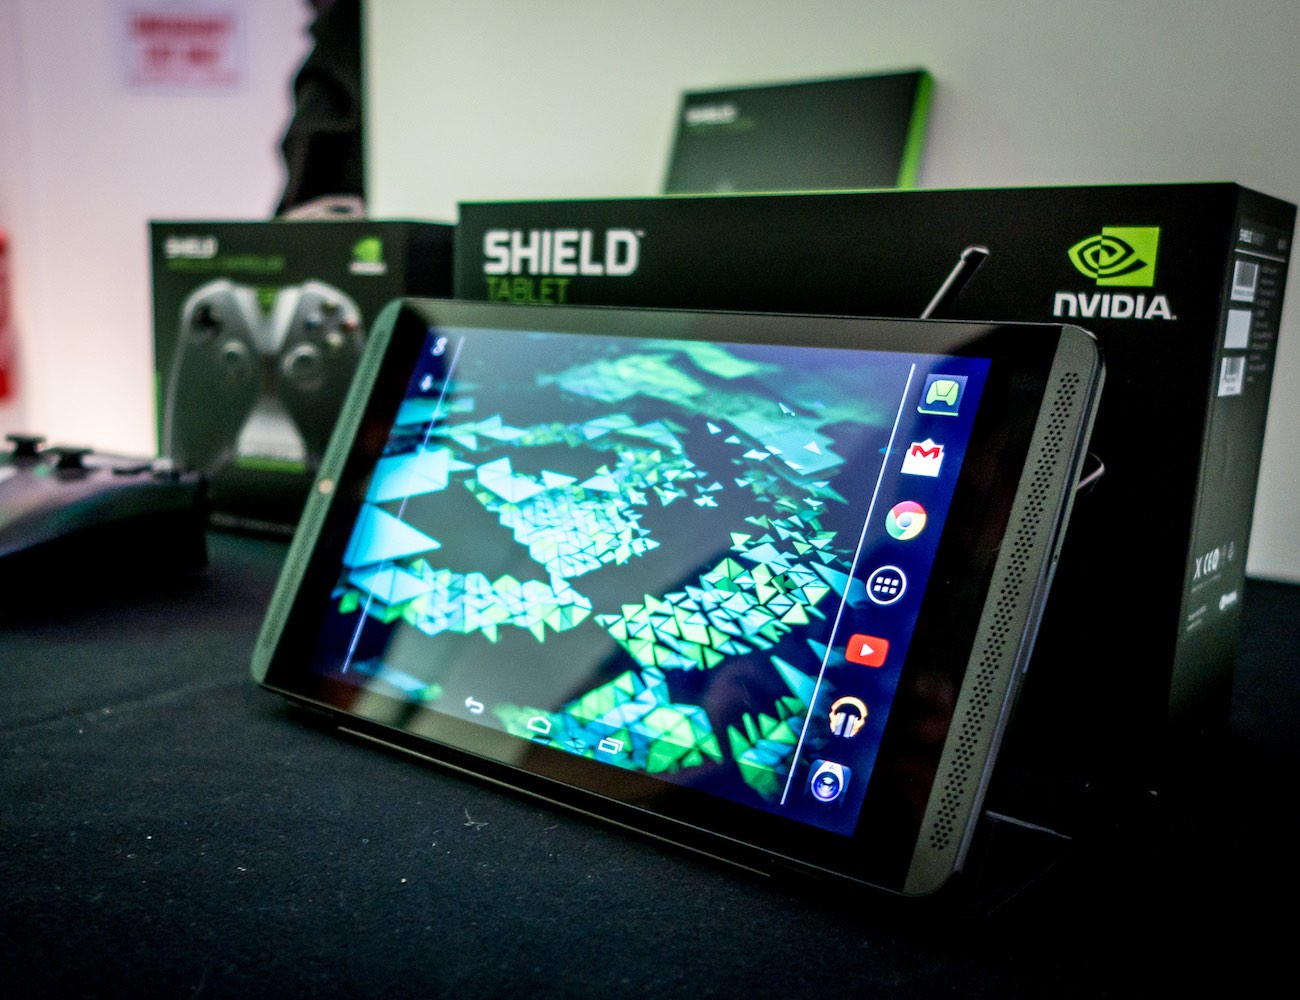 SHIELD Tablet K1 by Nvidia